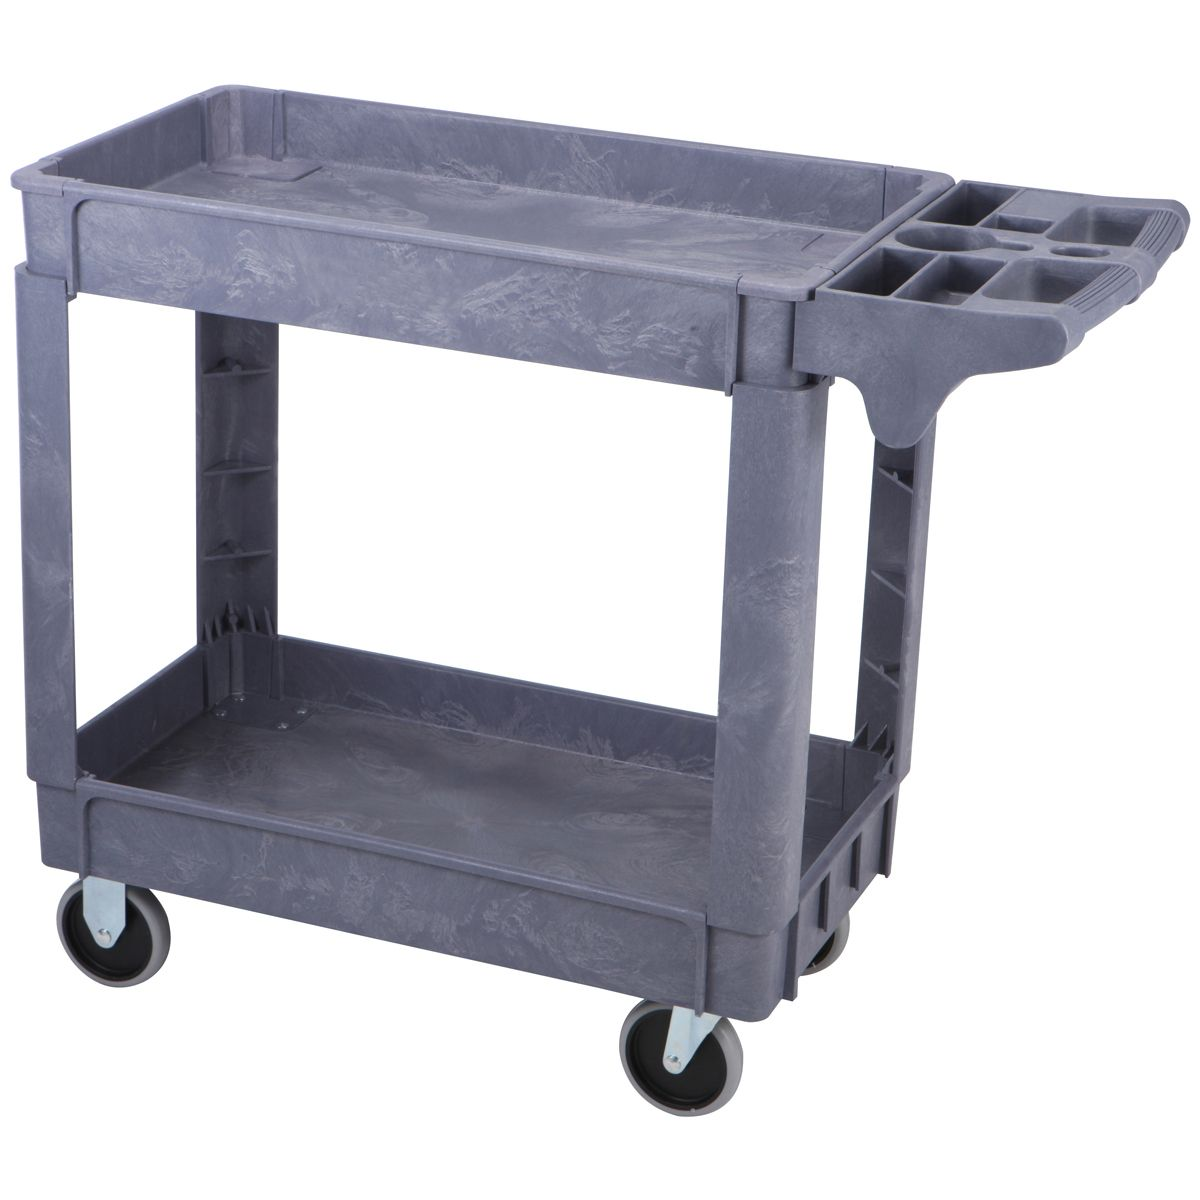 16 In X 30 In Industrial Polypropylene Service Cart Utility